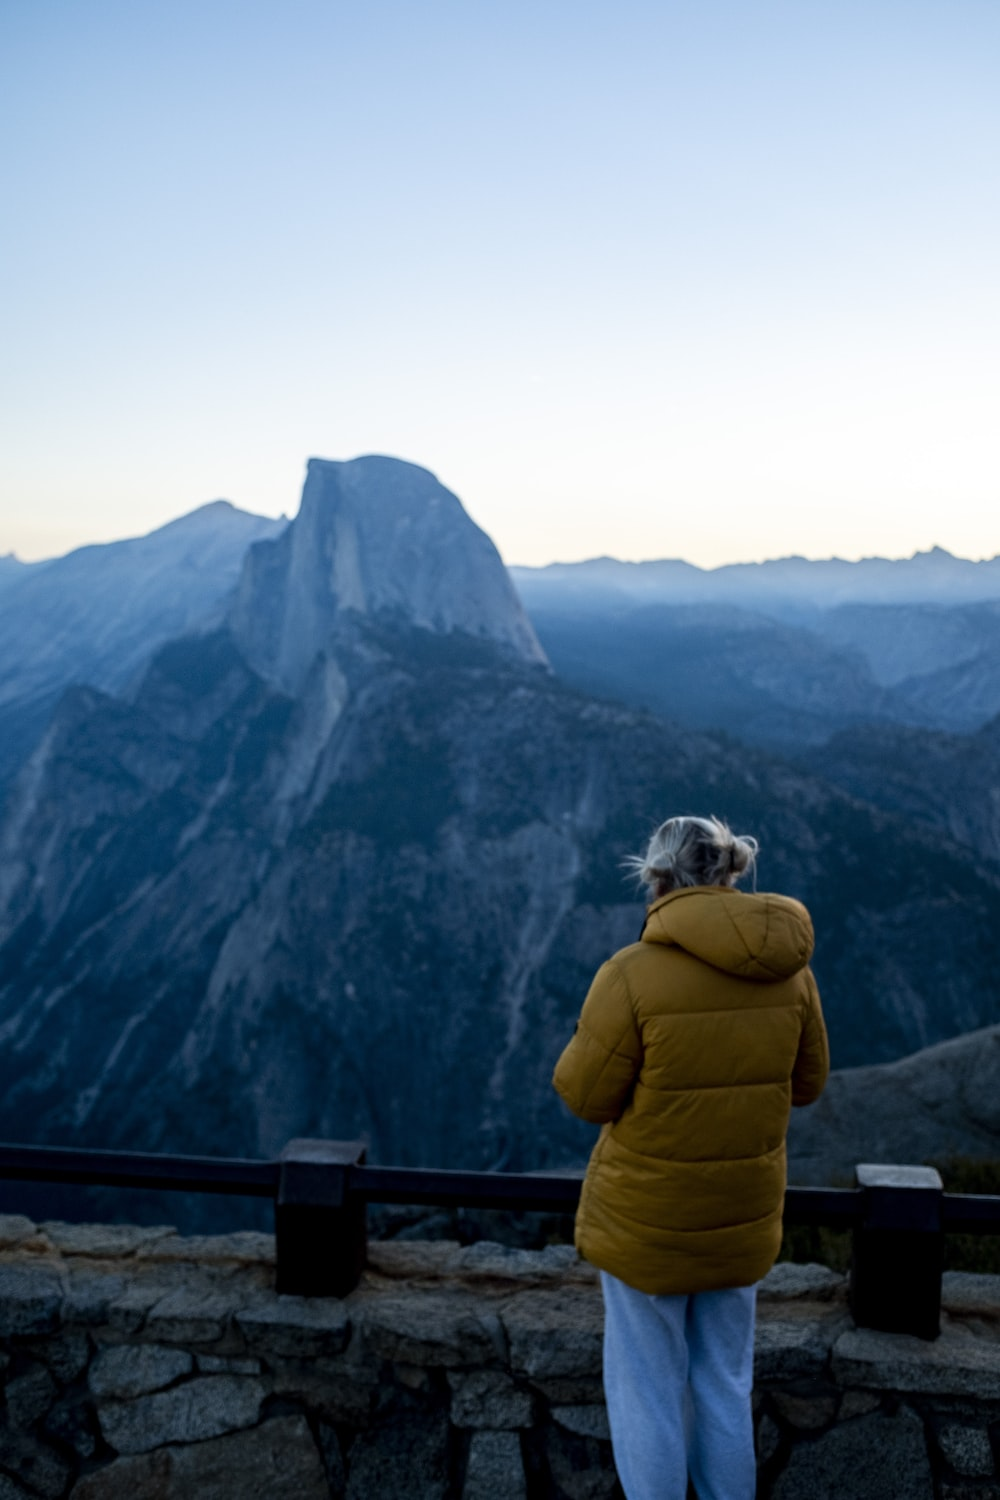 person in yellow jacket sitting on brown wooden fence looking at green mountains during daytime